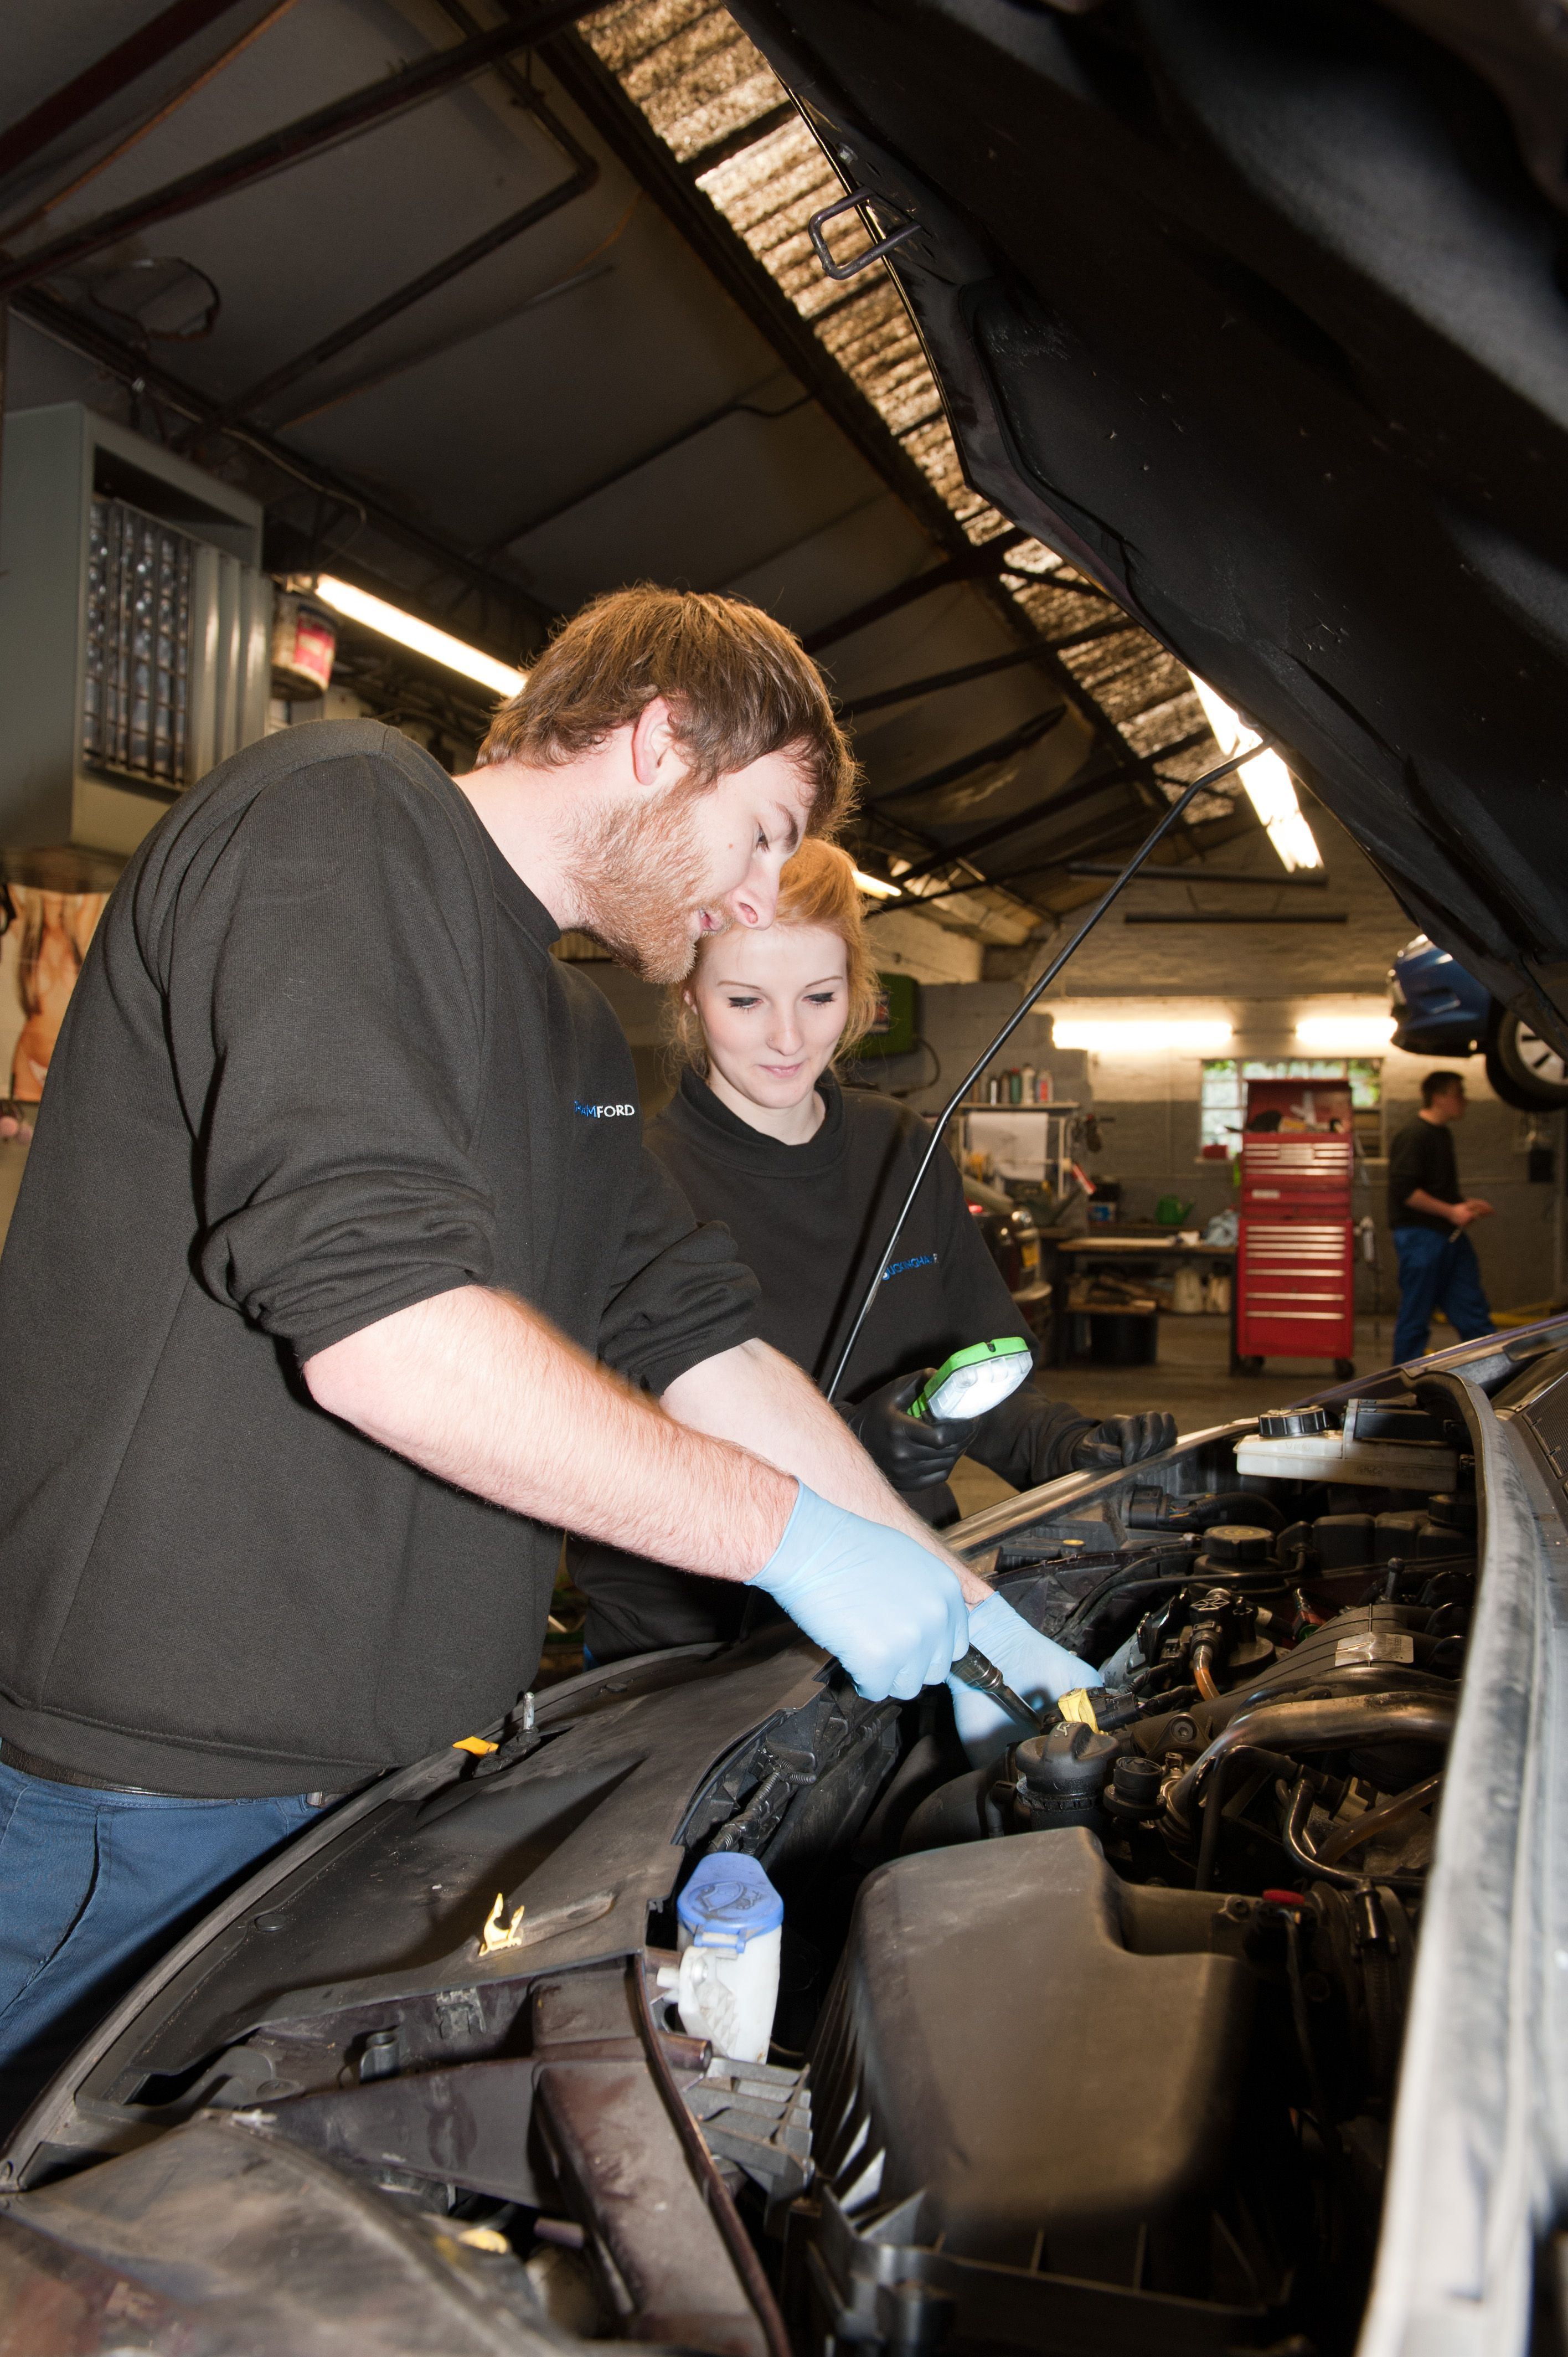 Scott and Chloe working on a car. carservice buckingham